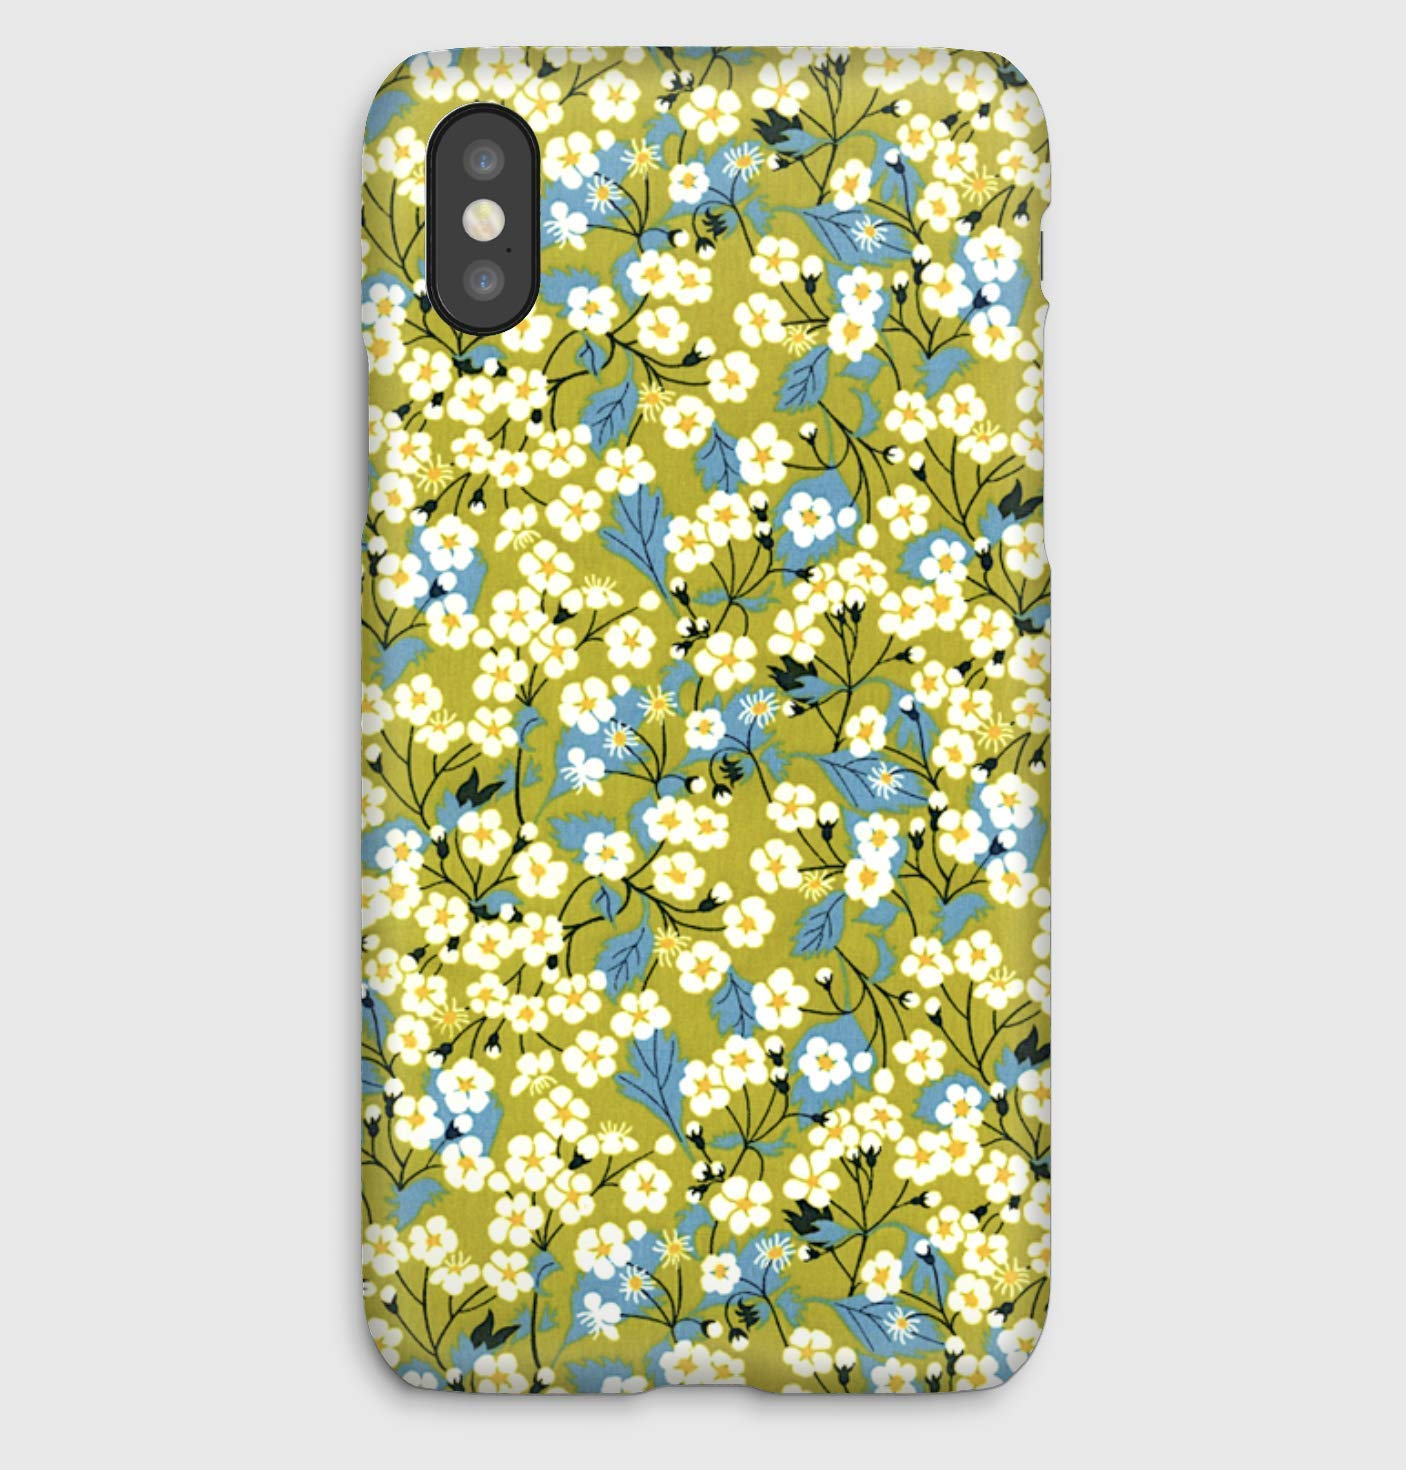 Liberty Mitsi C, coque pour iPhone XS, XS Max, XR, X, 8, 8+, 7, 7+, 6S, 6, 6S+, 6+, 5C, 5, 5S, 5SE, 4S, 4,